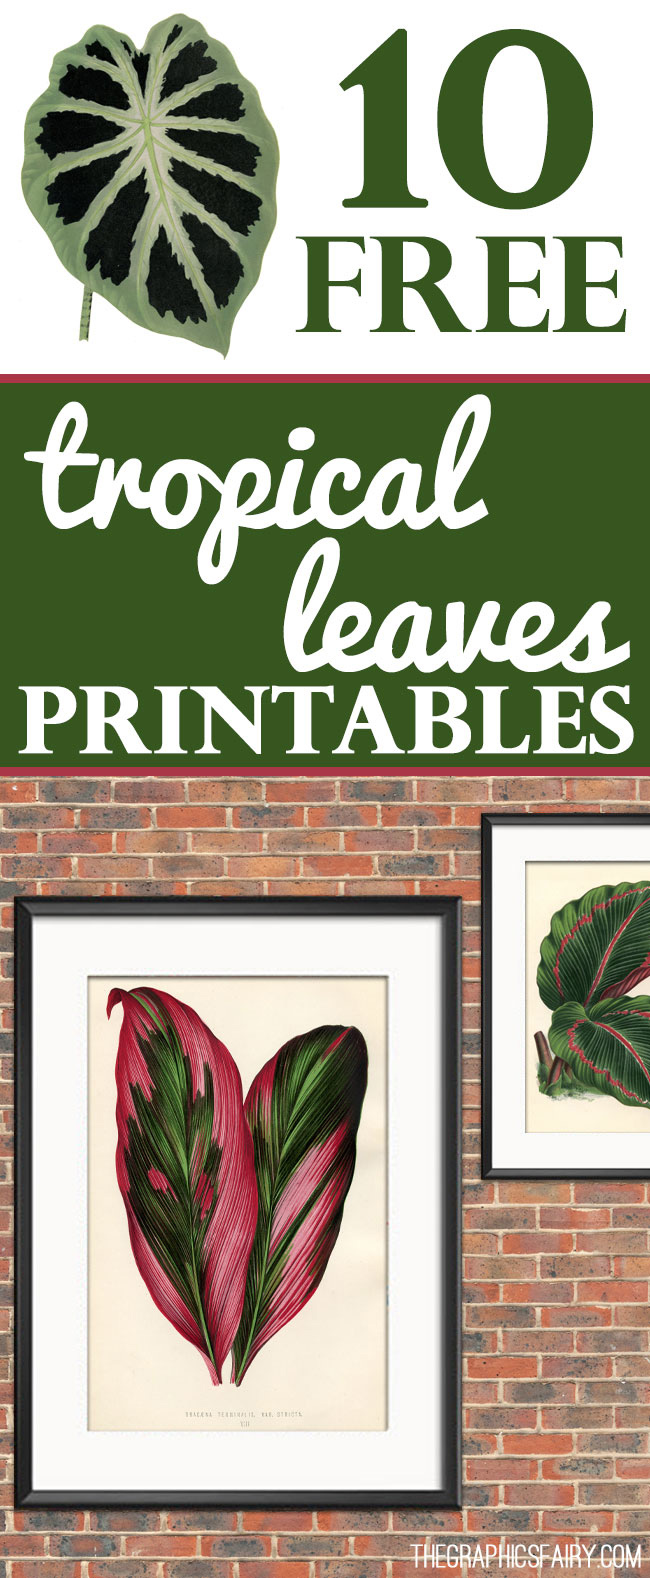 10 Free Tropical Leaves Printables